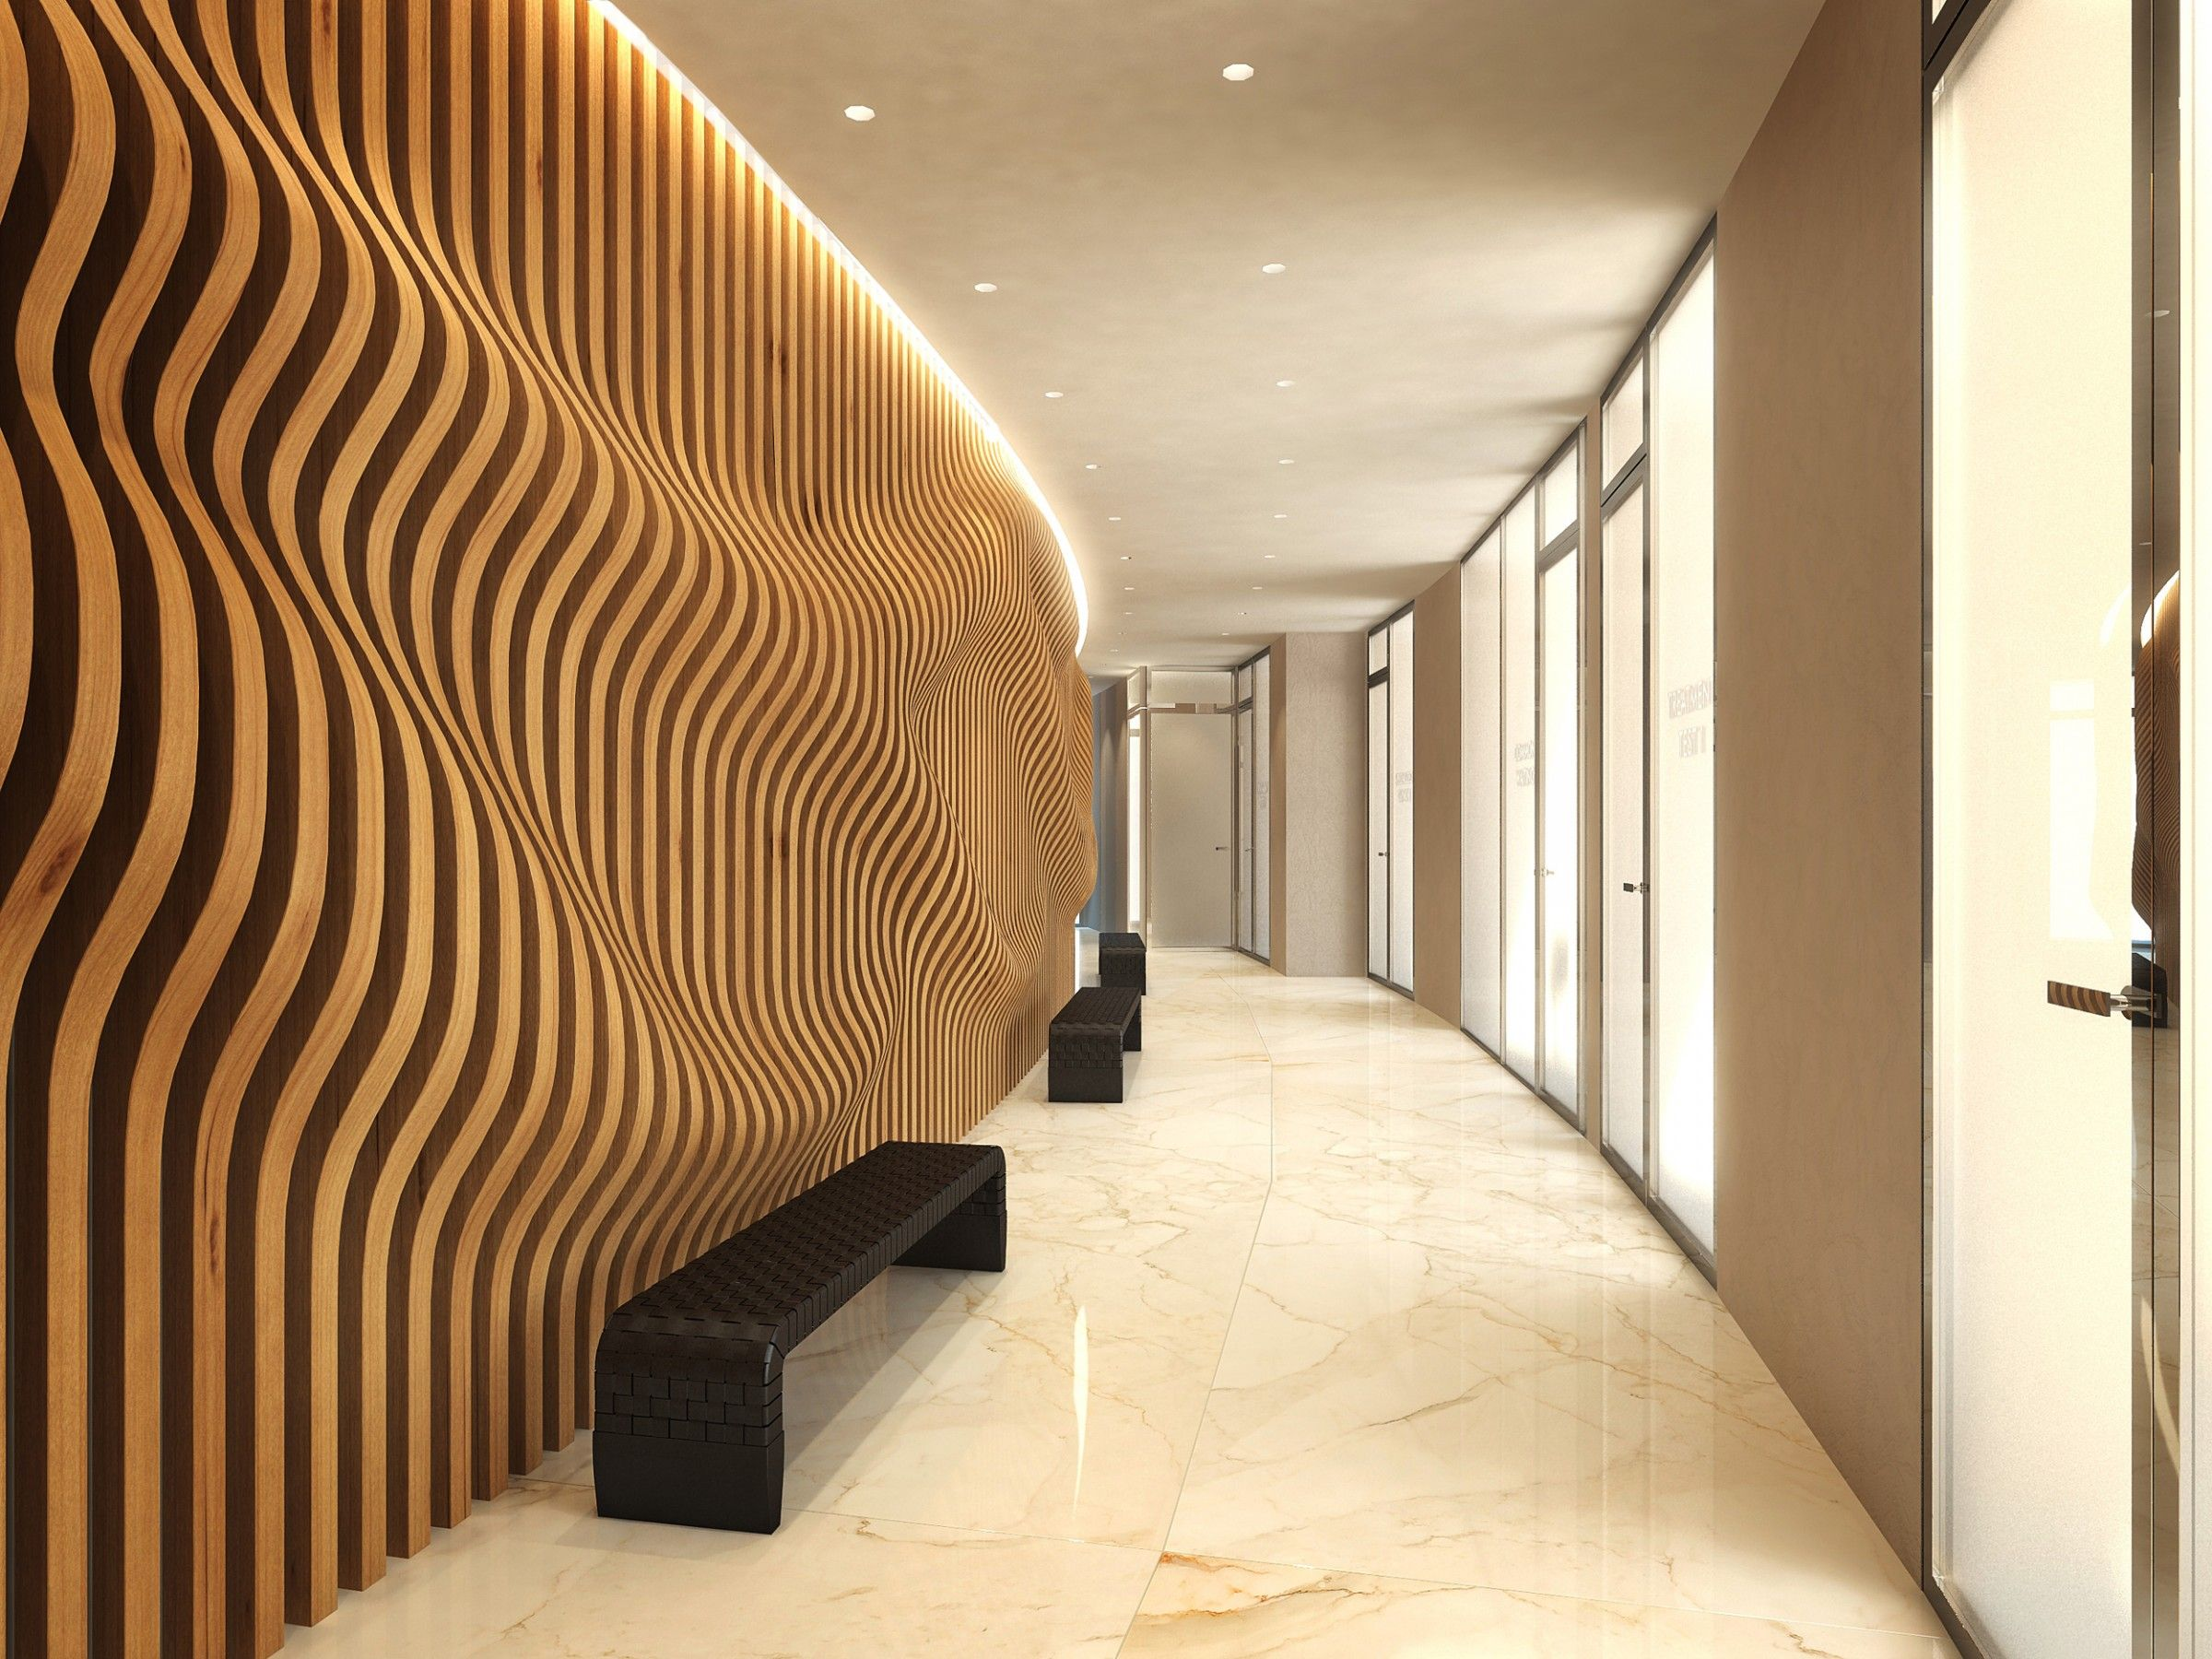 Commercial Office Interior Design Images Google Search Design Interiors Pinterest Office